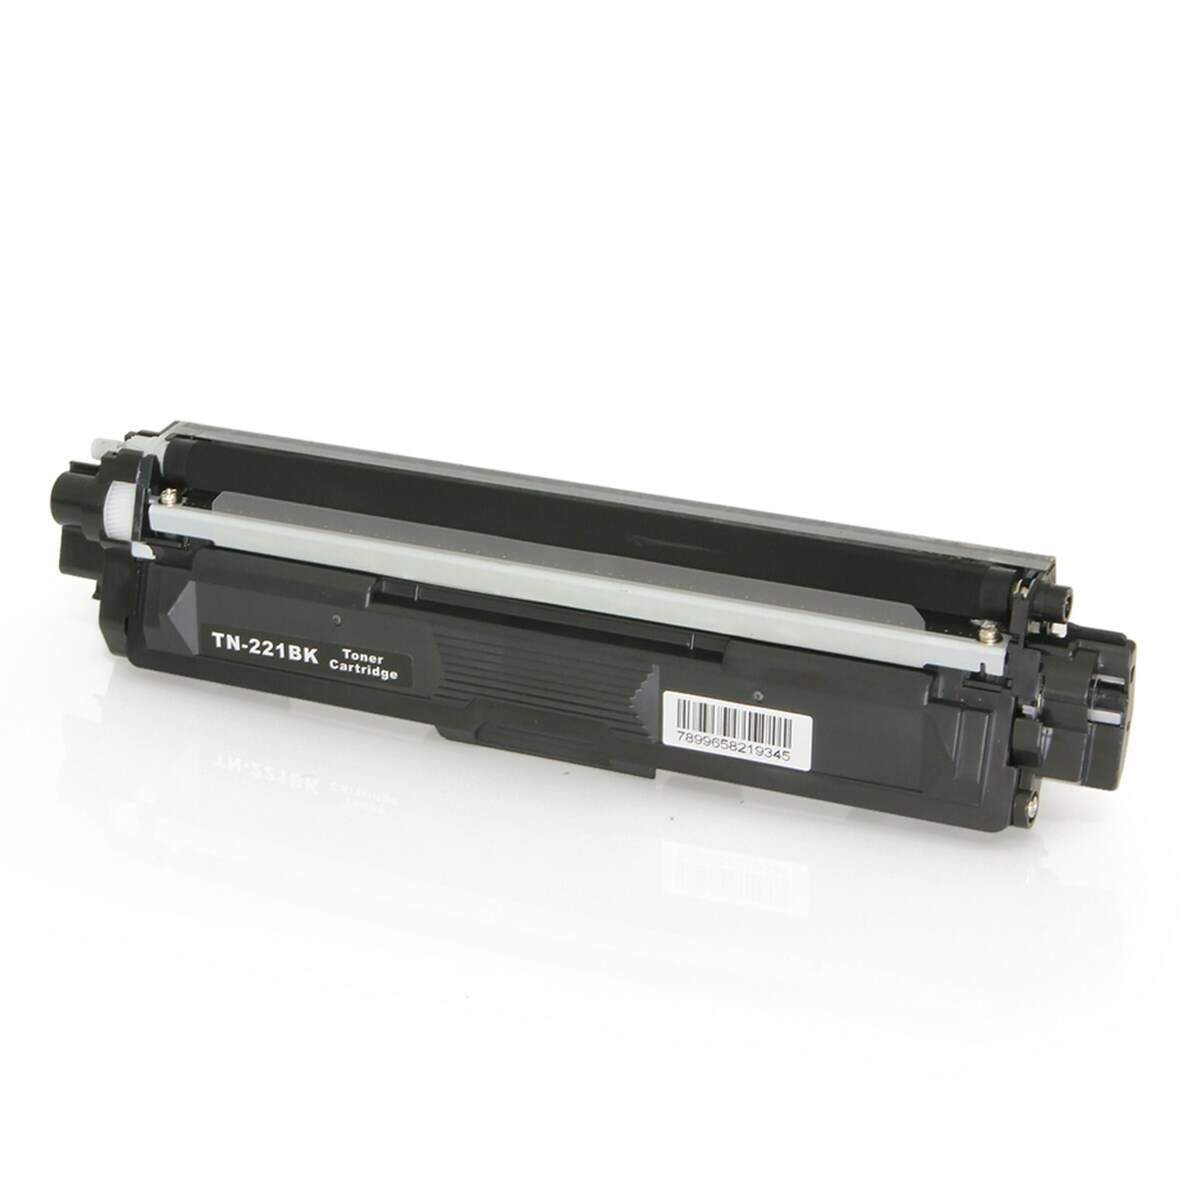 Toner Brother TN221 | TN-221BK | HL3140 | HL3170 | MFC9130 | MFC9330 | DCP9020 | Preto (Black) Compatível 2,5K